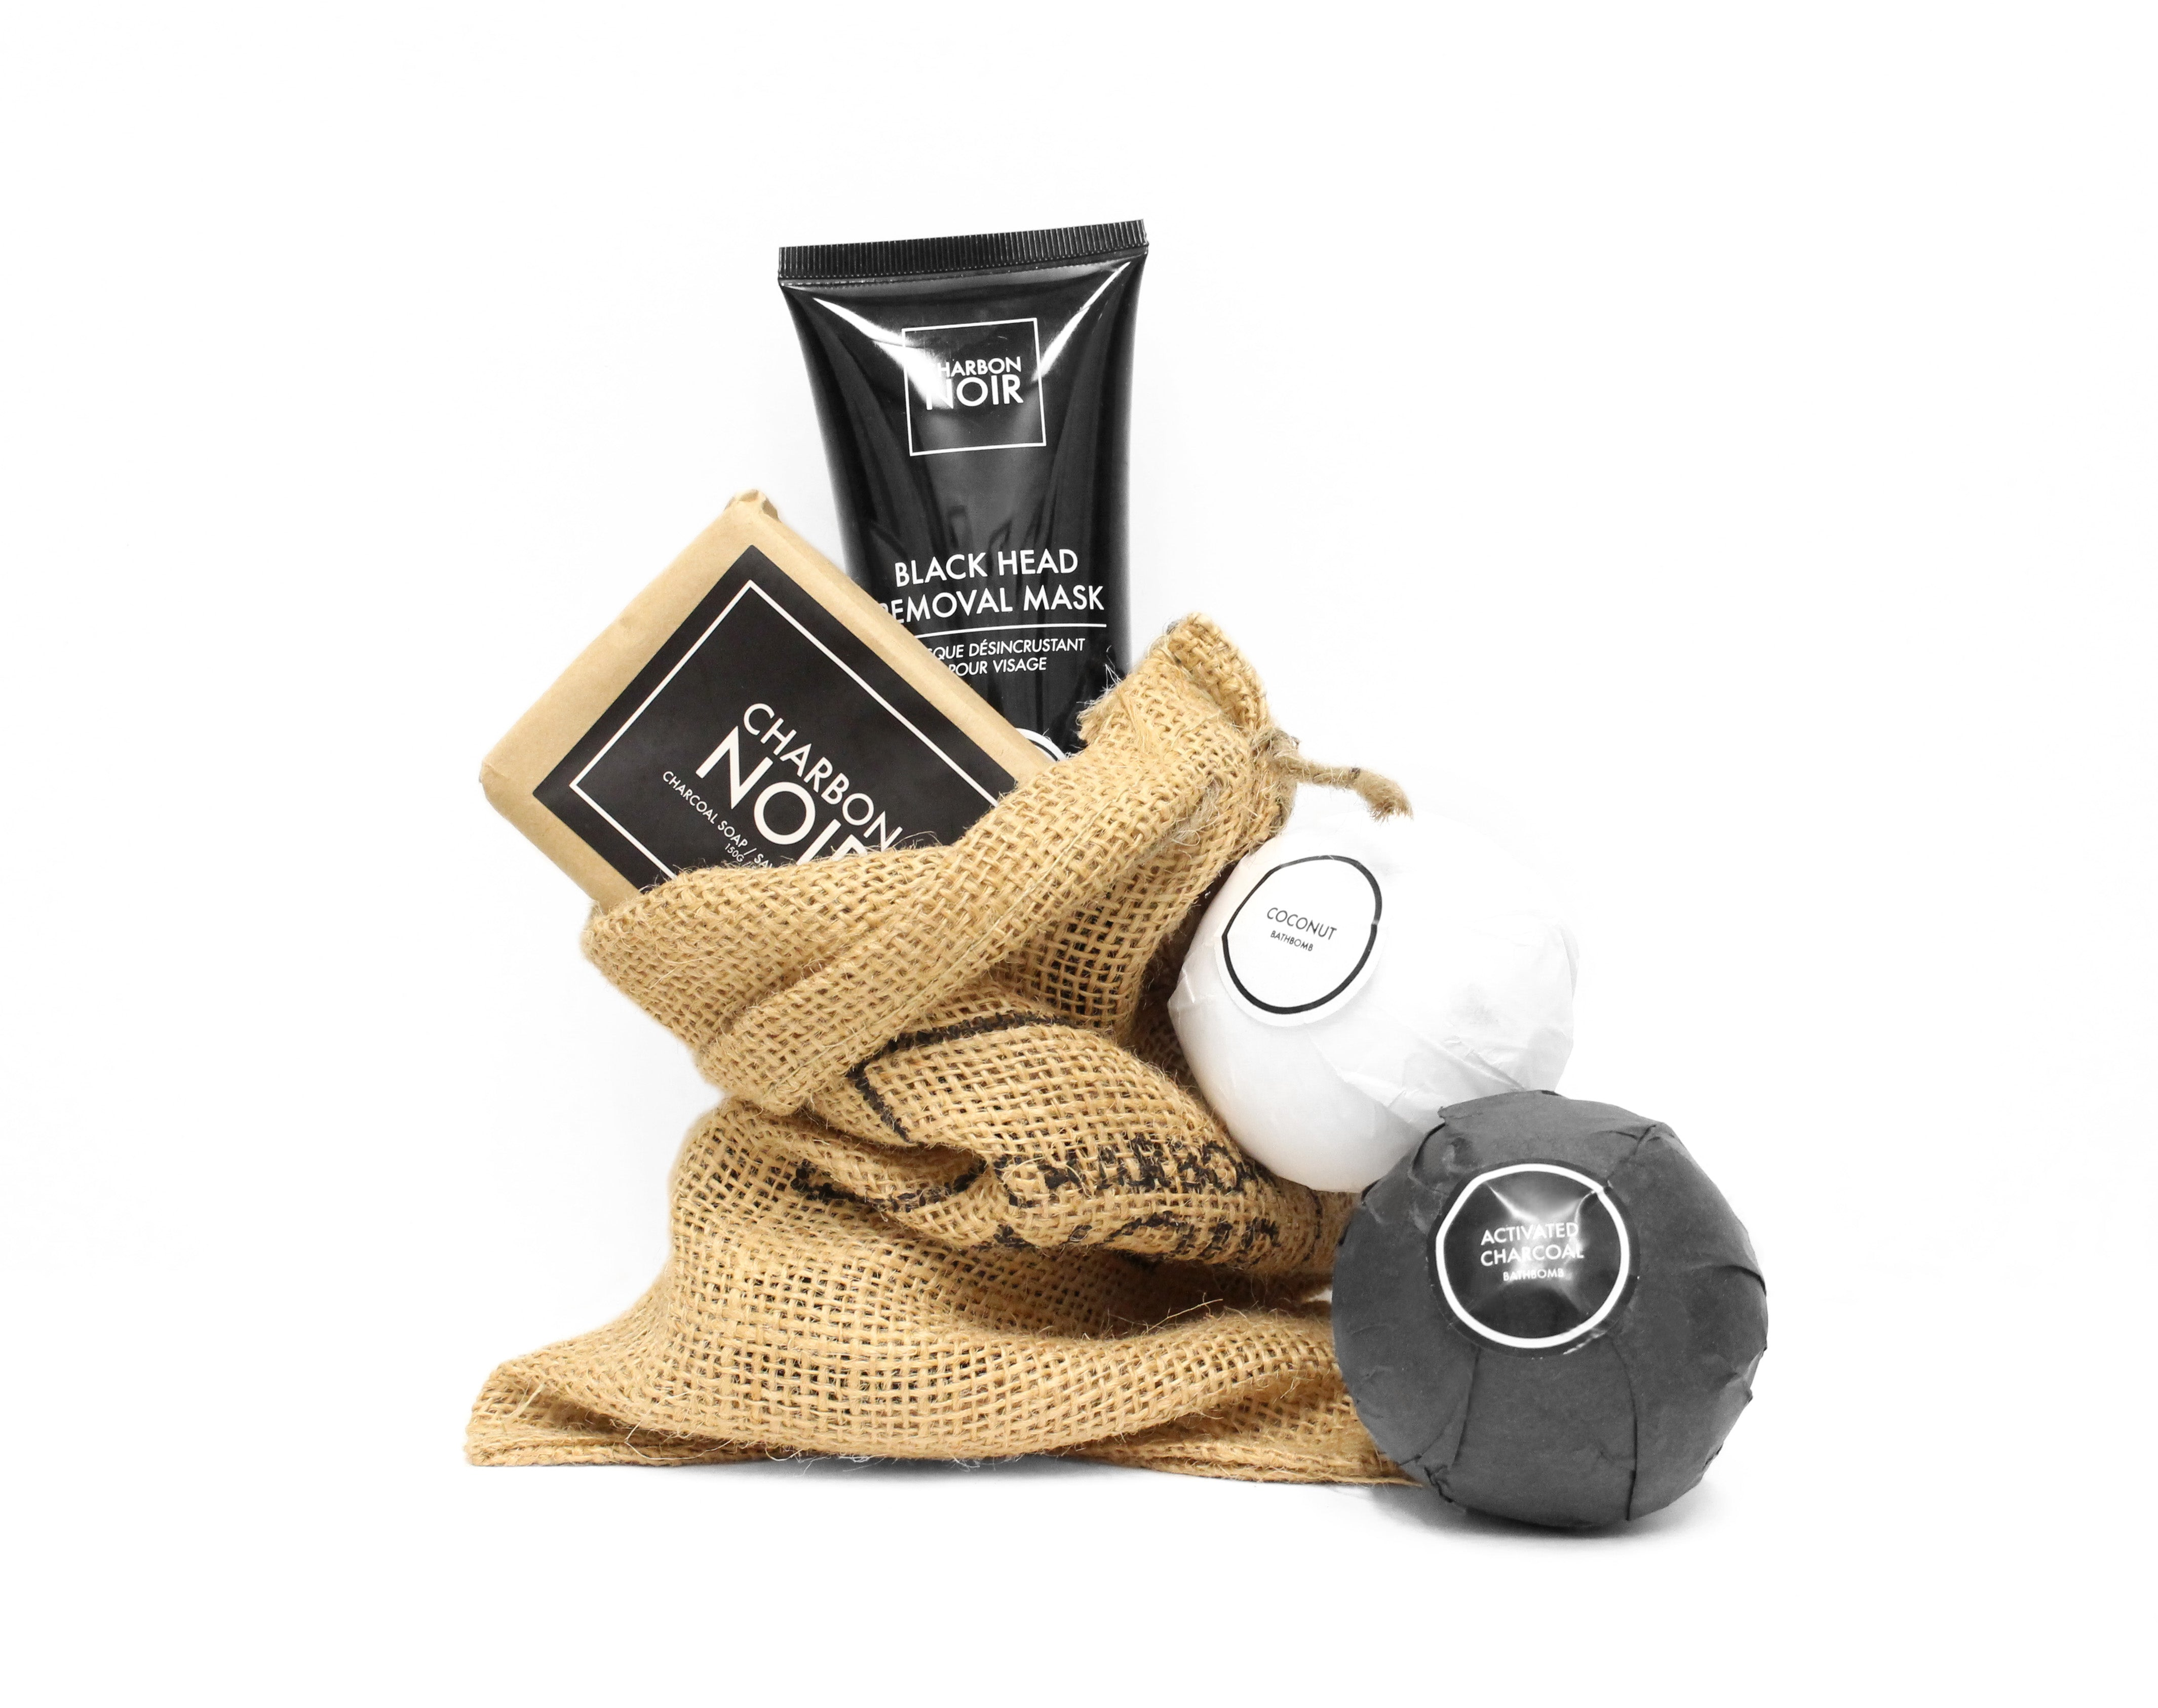 charbon-noir-cosmetics-skincare-kit-gift-wrapping